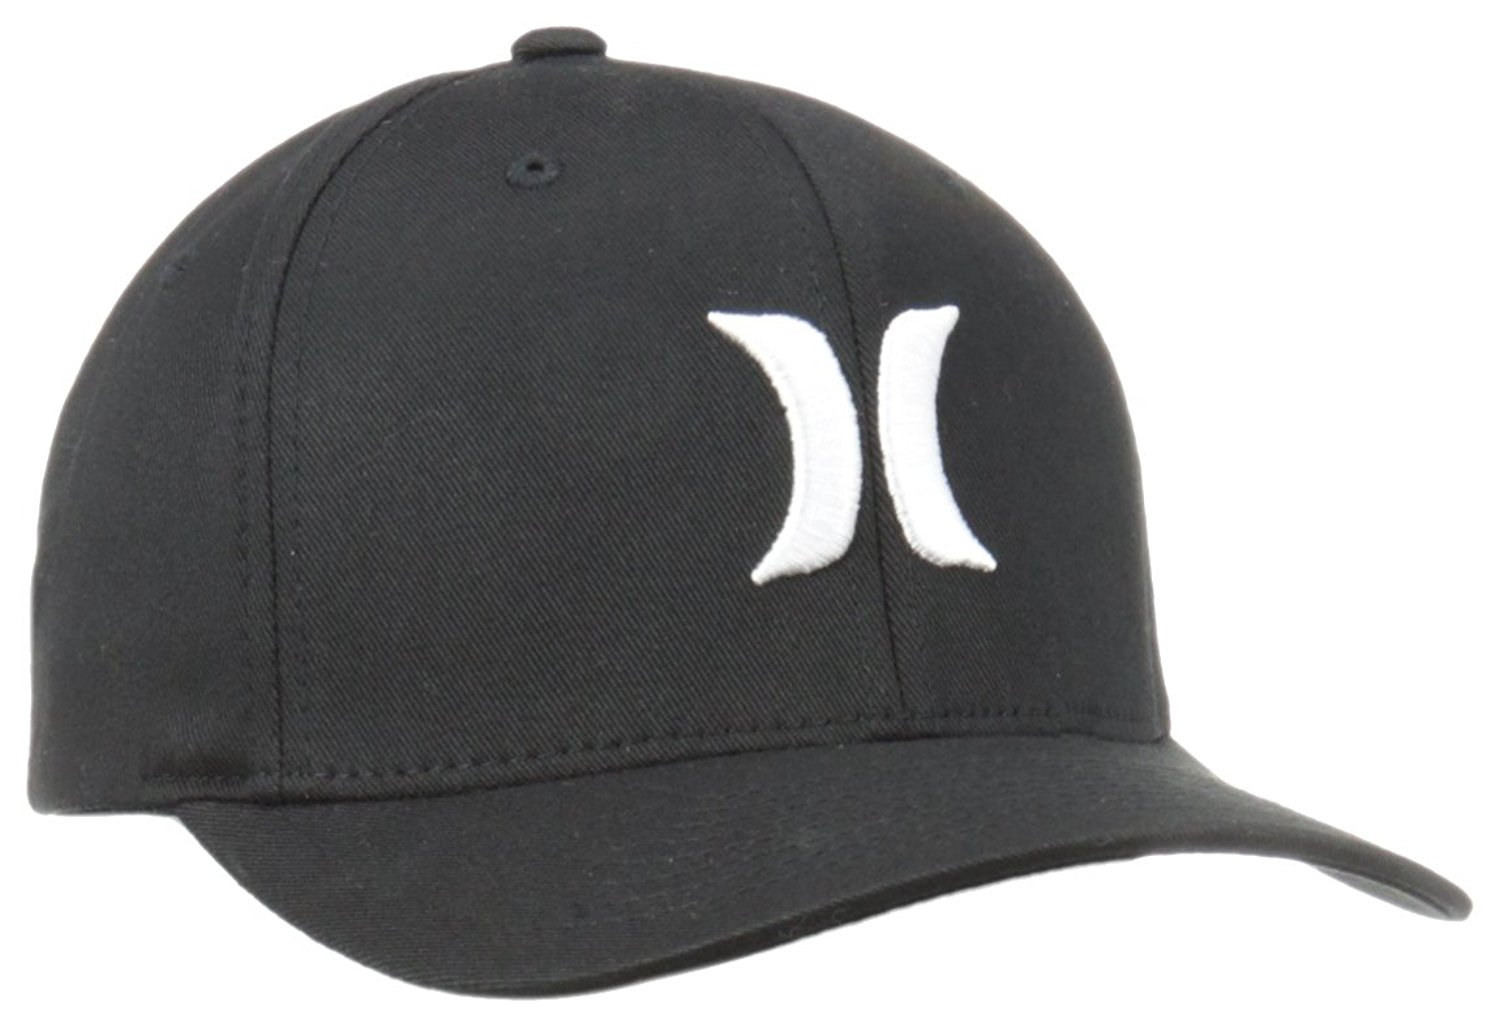 e375f6796a525 Get Quotations · Hurley Men s One and Only Black White Hat Flex Fit